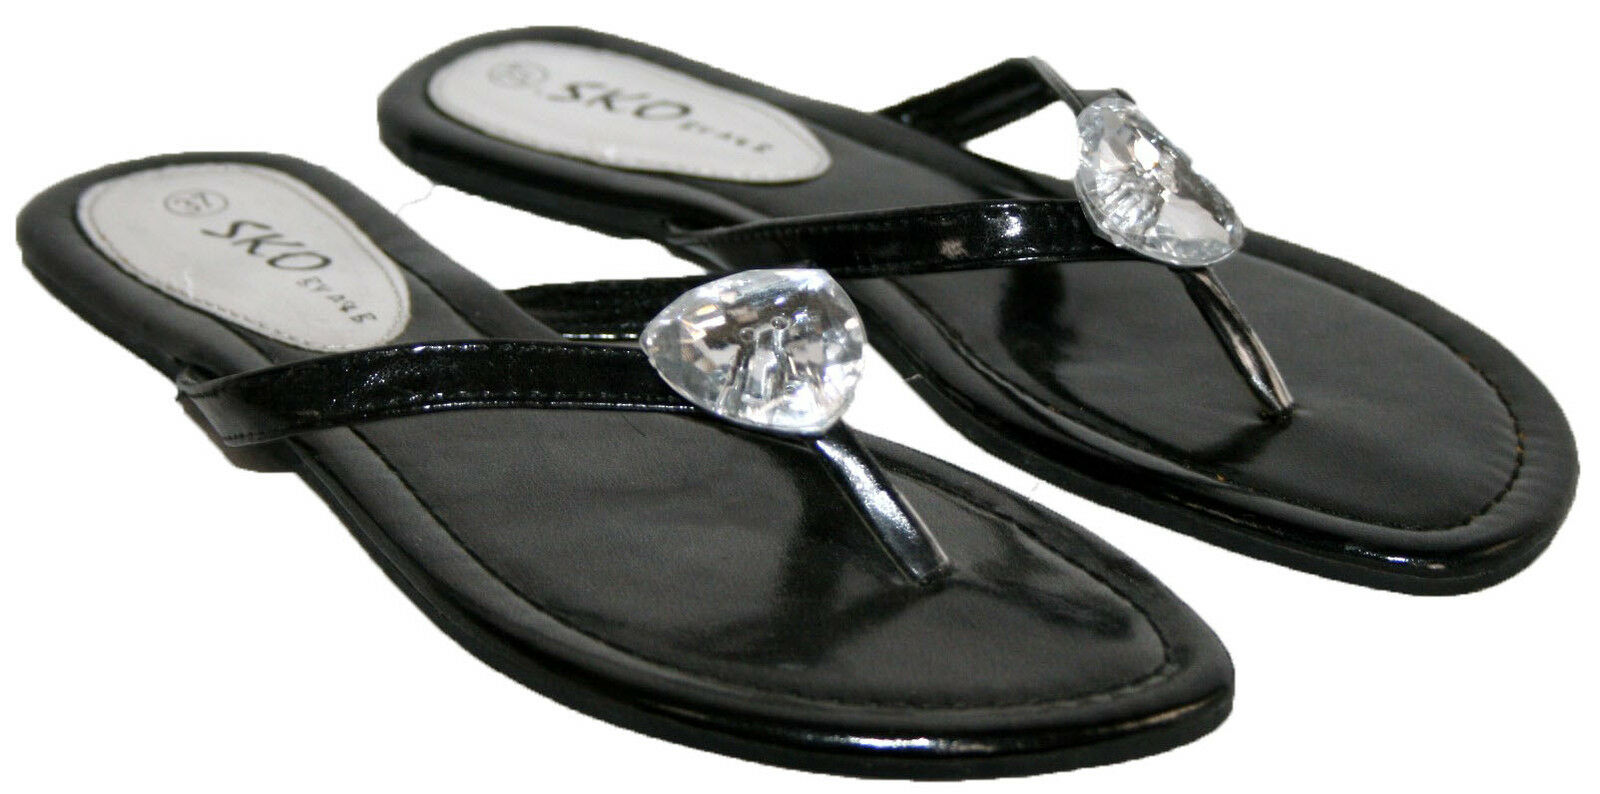 LADIES SLIP ON TOE POST MULE WITH 3-8 BEAD TRIM IN SIZES 3-8 WITH c41a6a